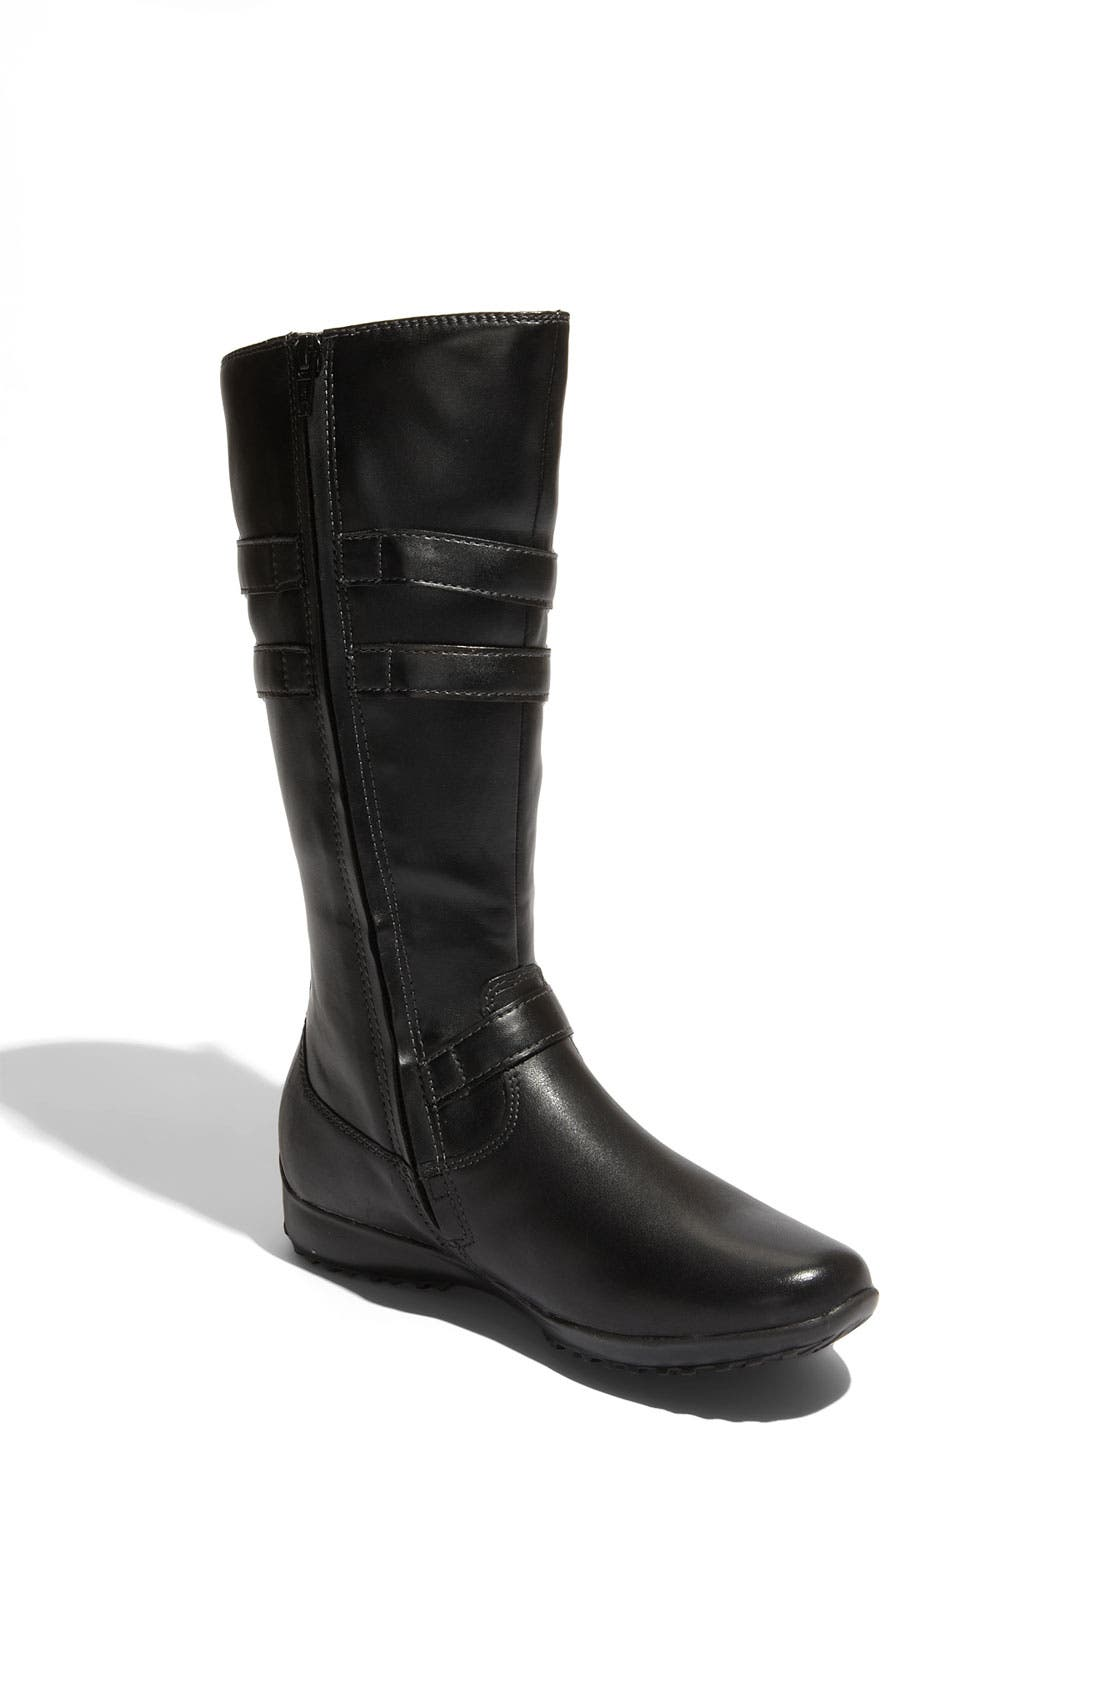 Alternate Image 1 Selected - Geox 'Peggy' Boot (Toddler, Little Kid & Big Kid)